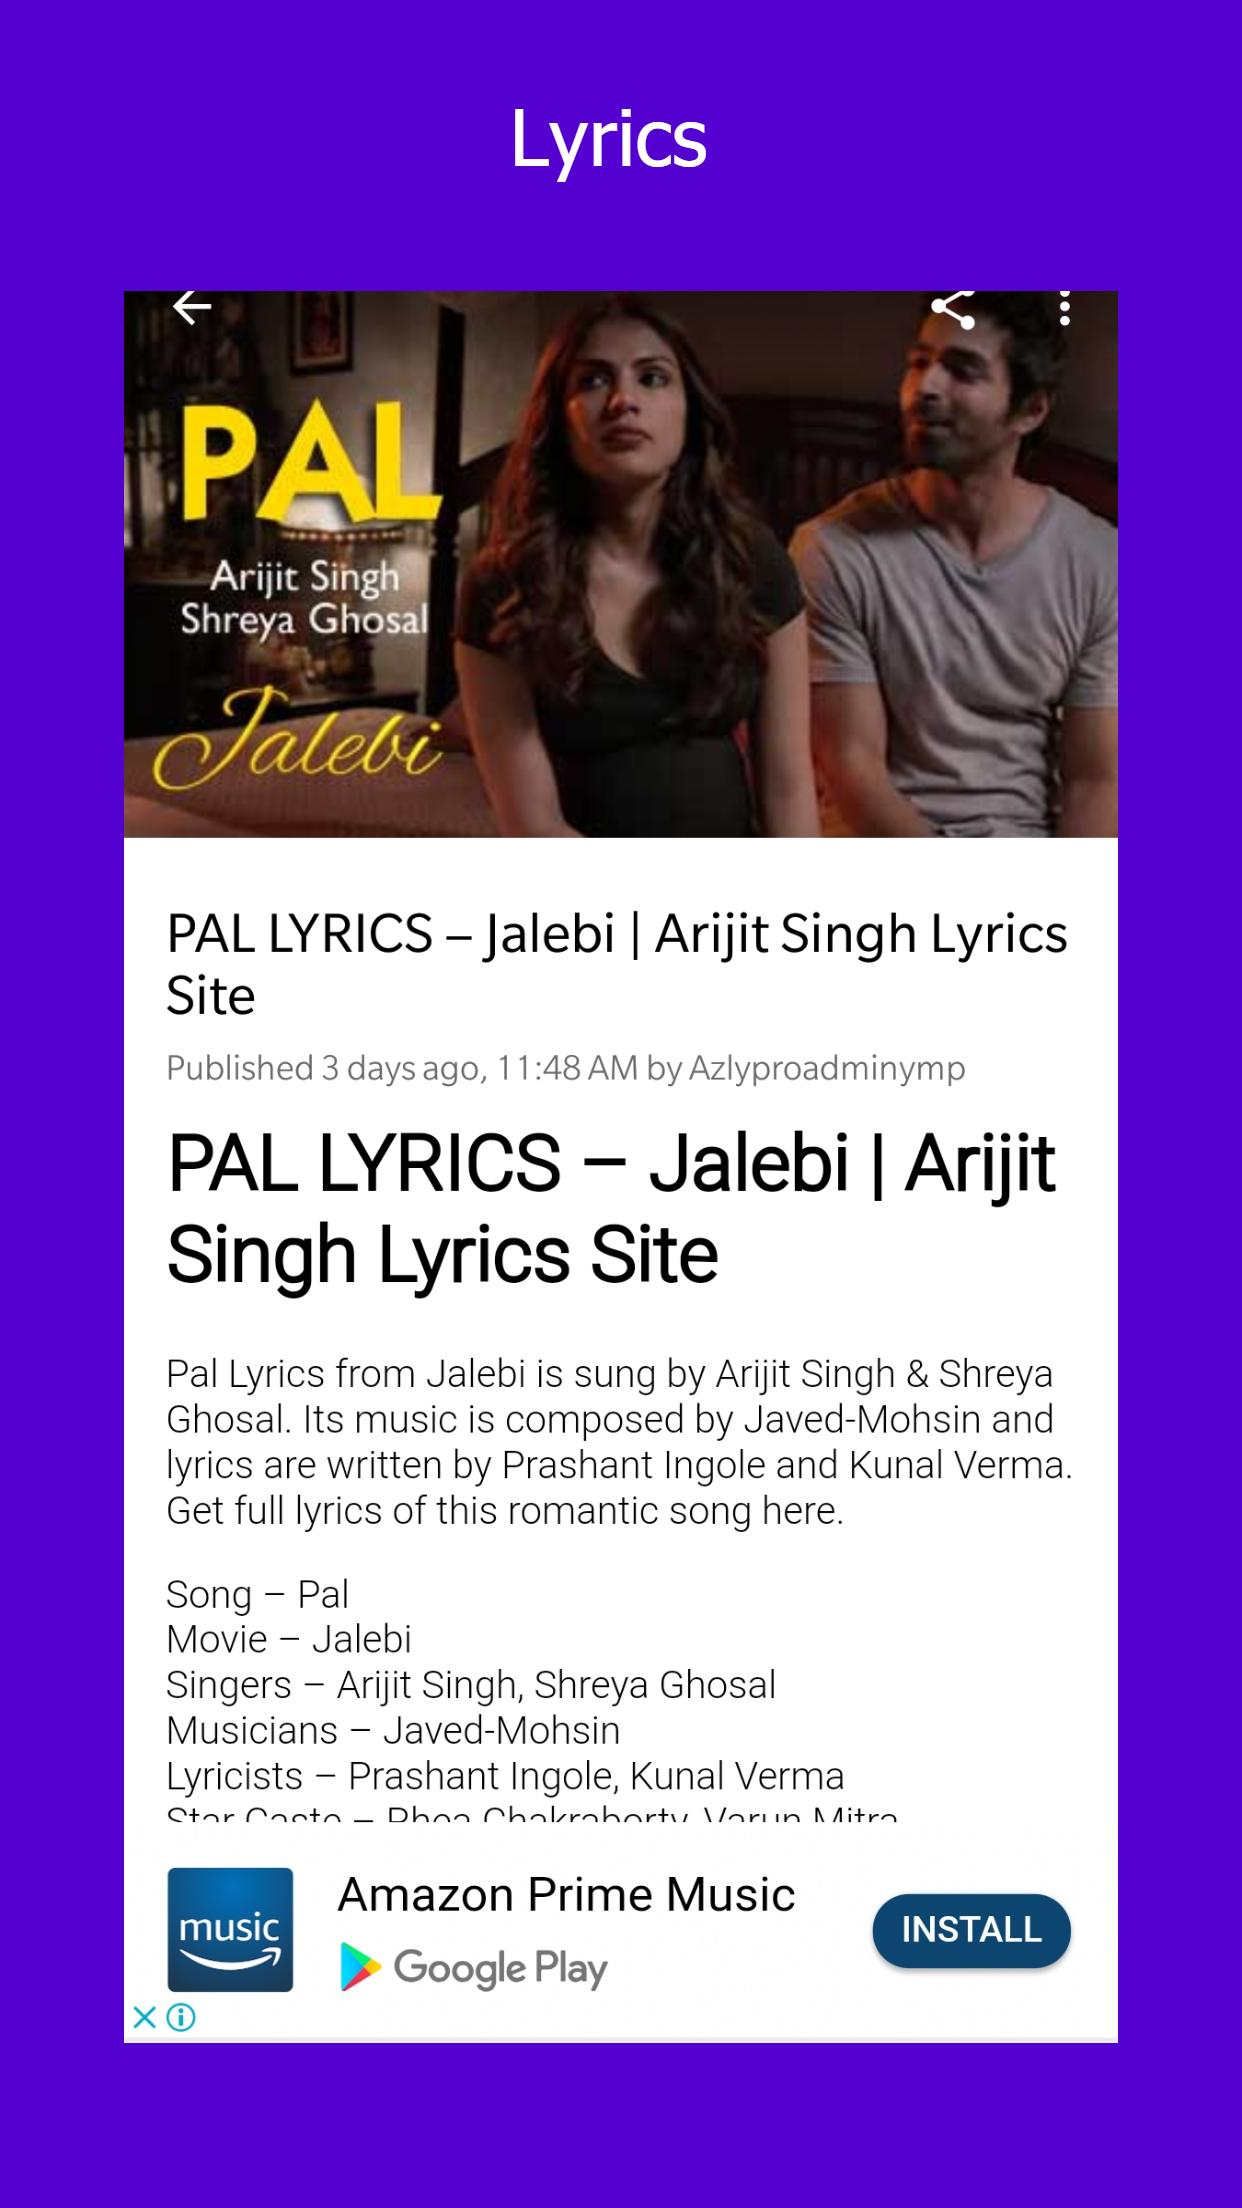 Lyrics Hindi Punjabi English Song Azlyricspro For Android Apk Download All copyright belong to the chainsmokers and halsey best lyrics ever written,best lyrics songs,best lyrics songs english,best lyrics 2015,best lyrics ever. lyrics hindi punjabi english song